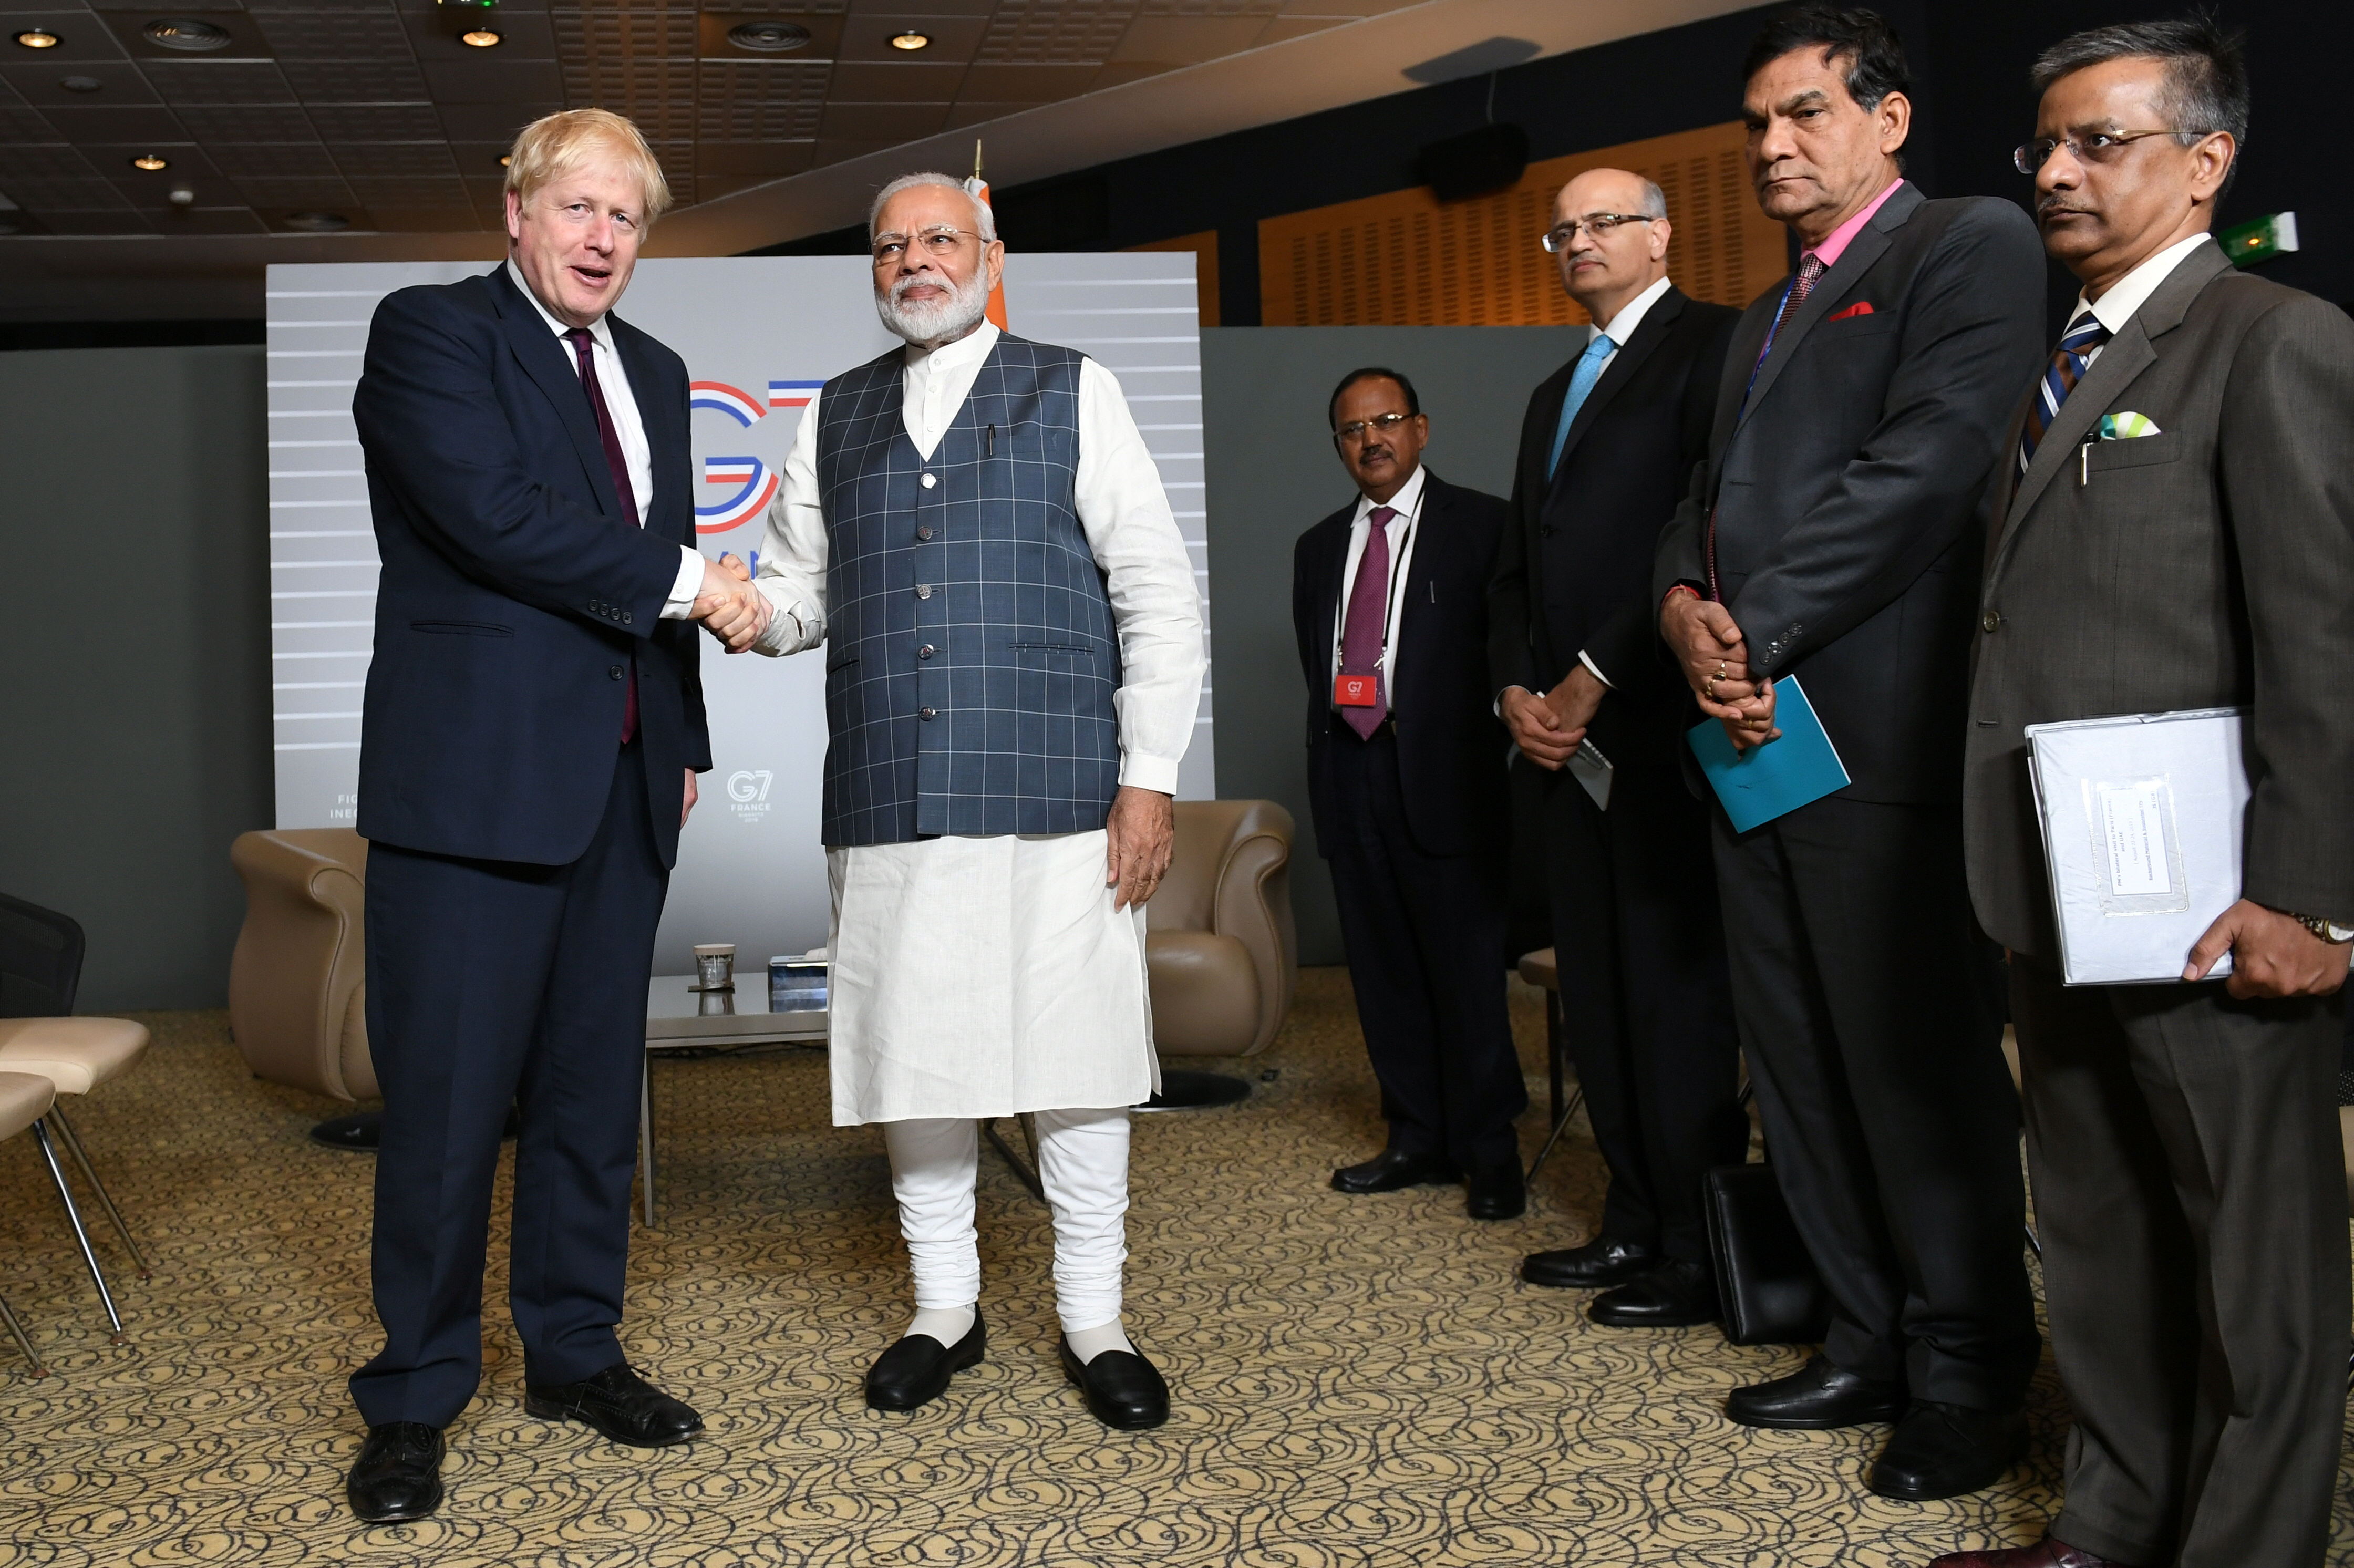 Britain's Prime Minister Boris Johnson meets Indian Prime Minister Narendra Modi at a bilateral meeting during the G7 summit in Biarritz, France August 25, 2019. Stefan Rousseau/Pool via REUTERS